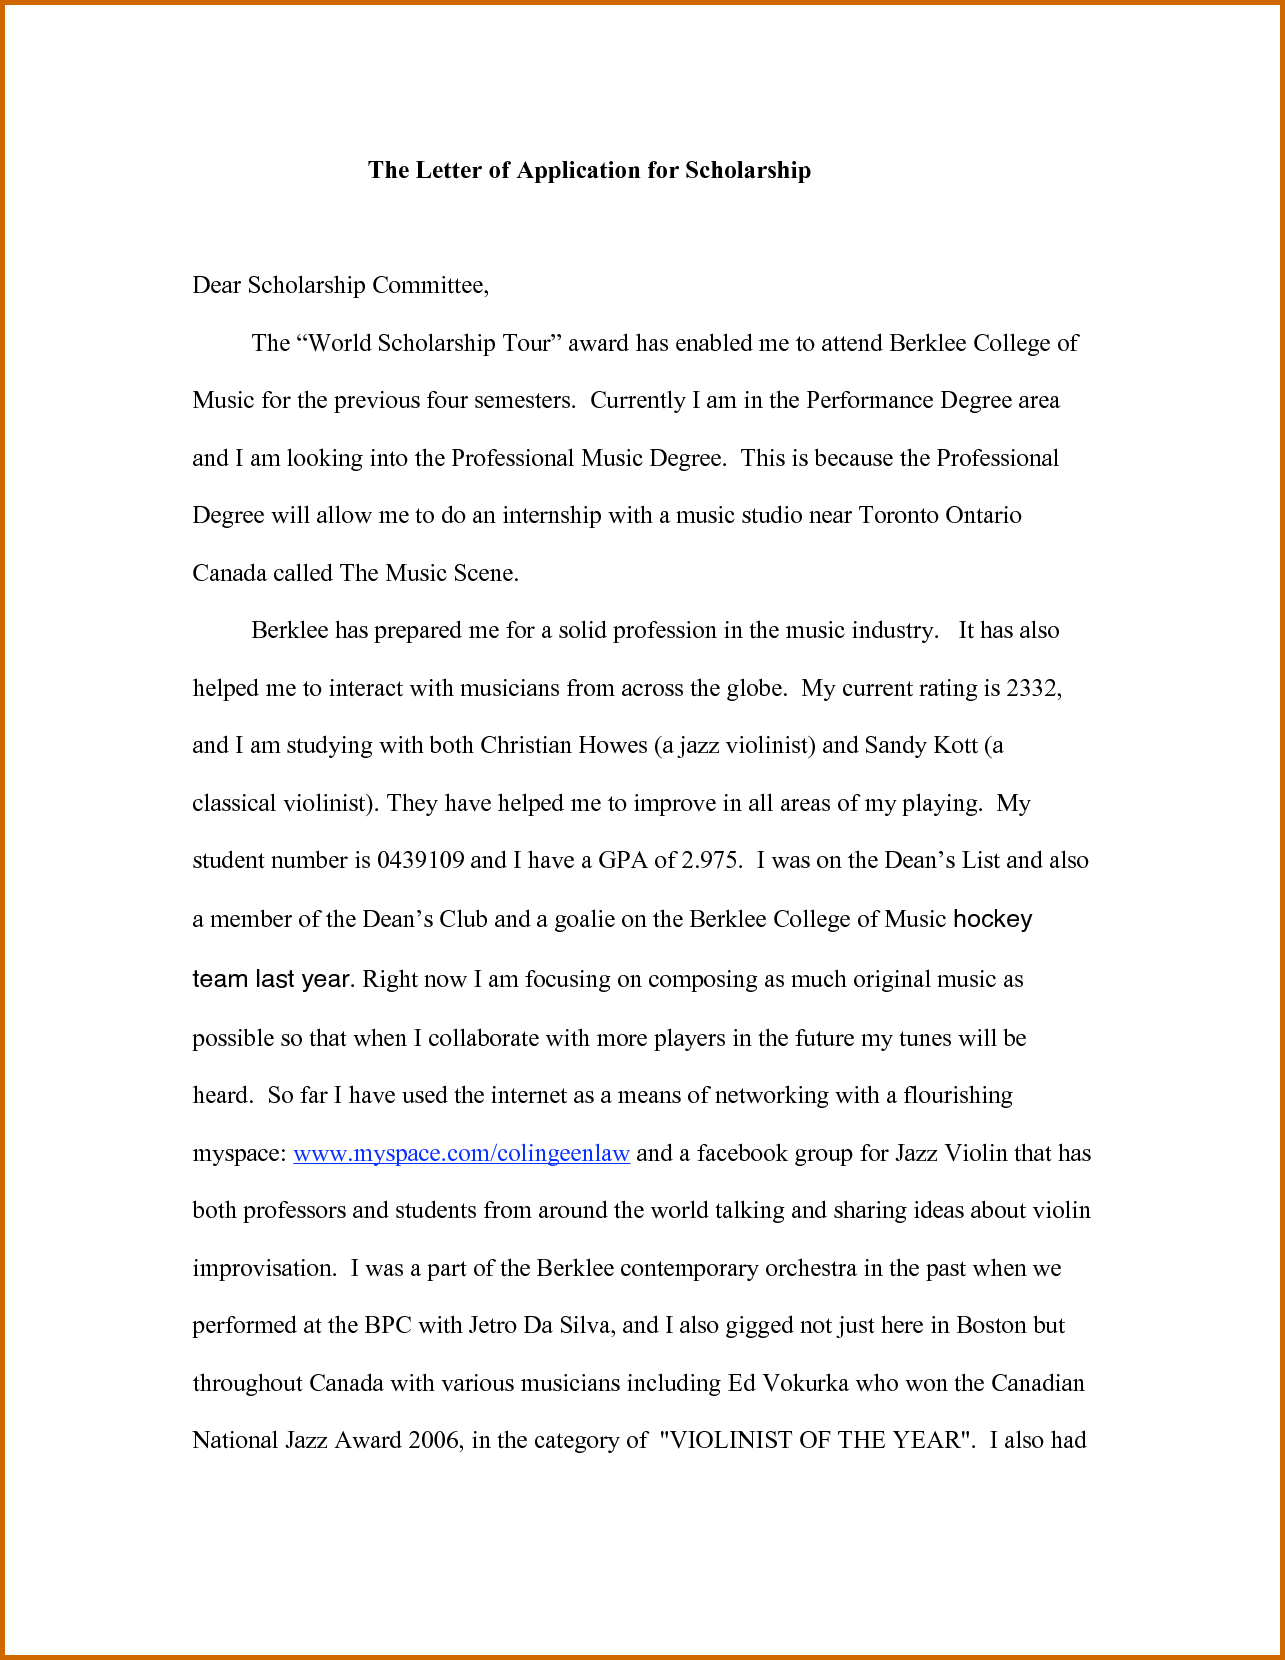 007 Essay Example How To Write Application For Scholarship Frightening Sample Nursing Engineering Pdf Full